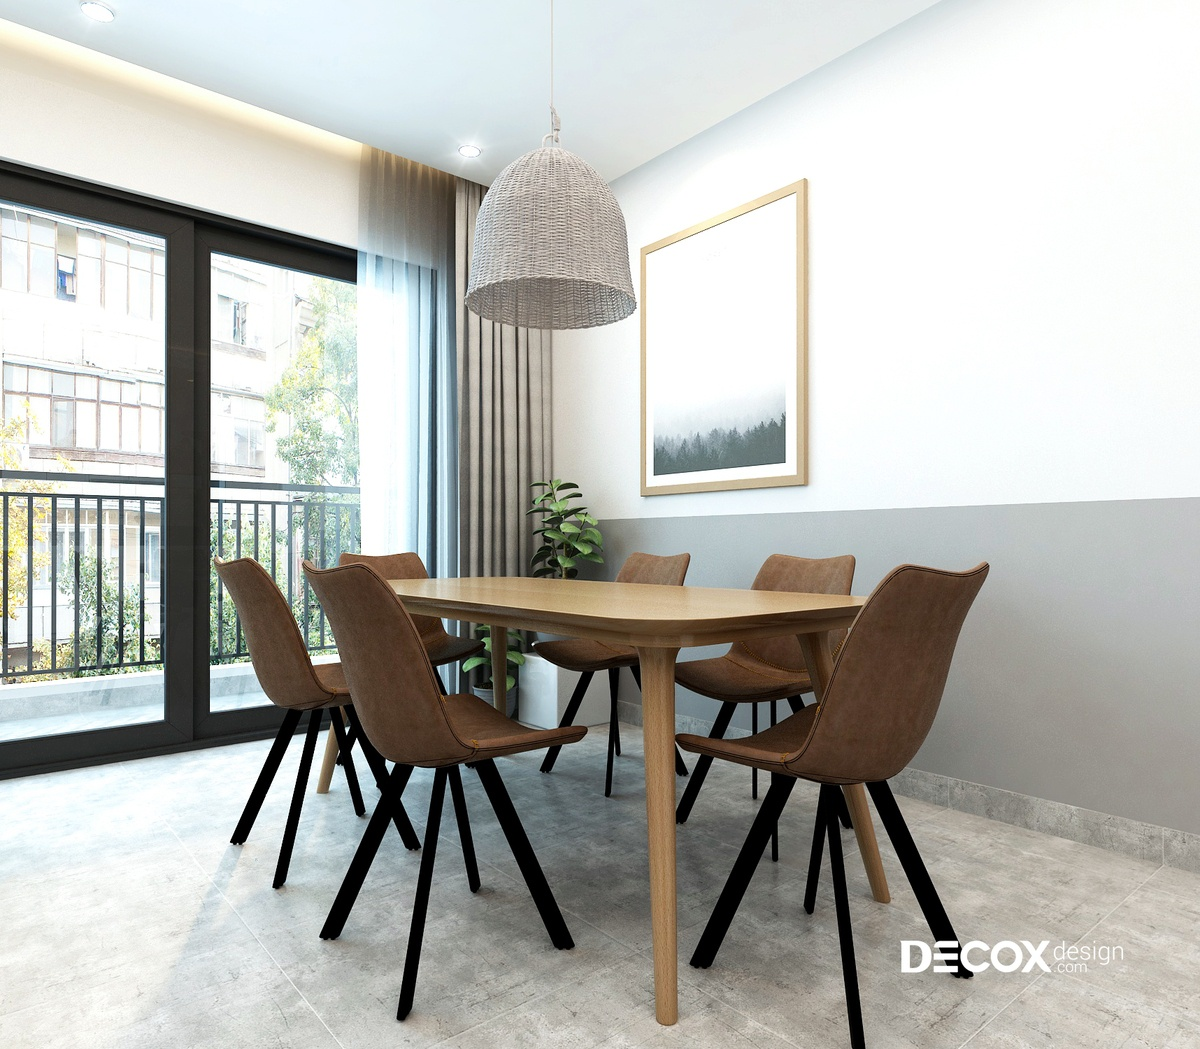 thiet-ke-noi-that-palm-heights-120m2-m190005-phong-khach-01-decox-design